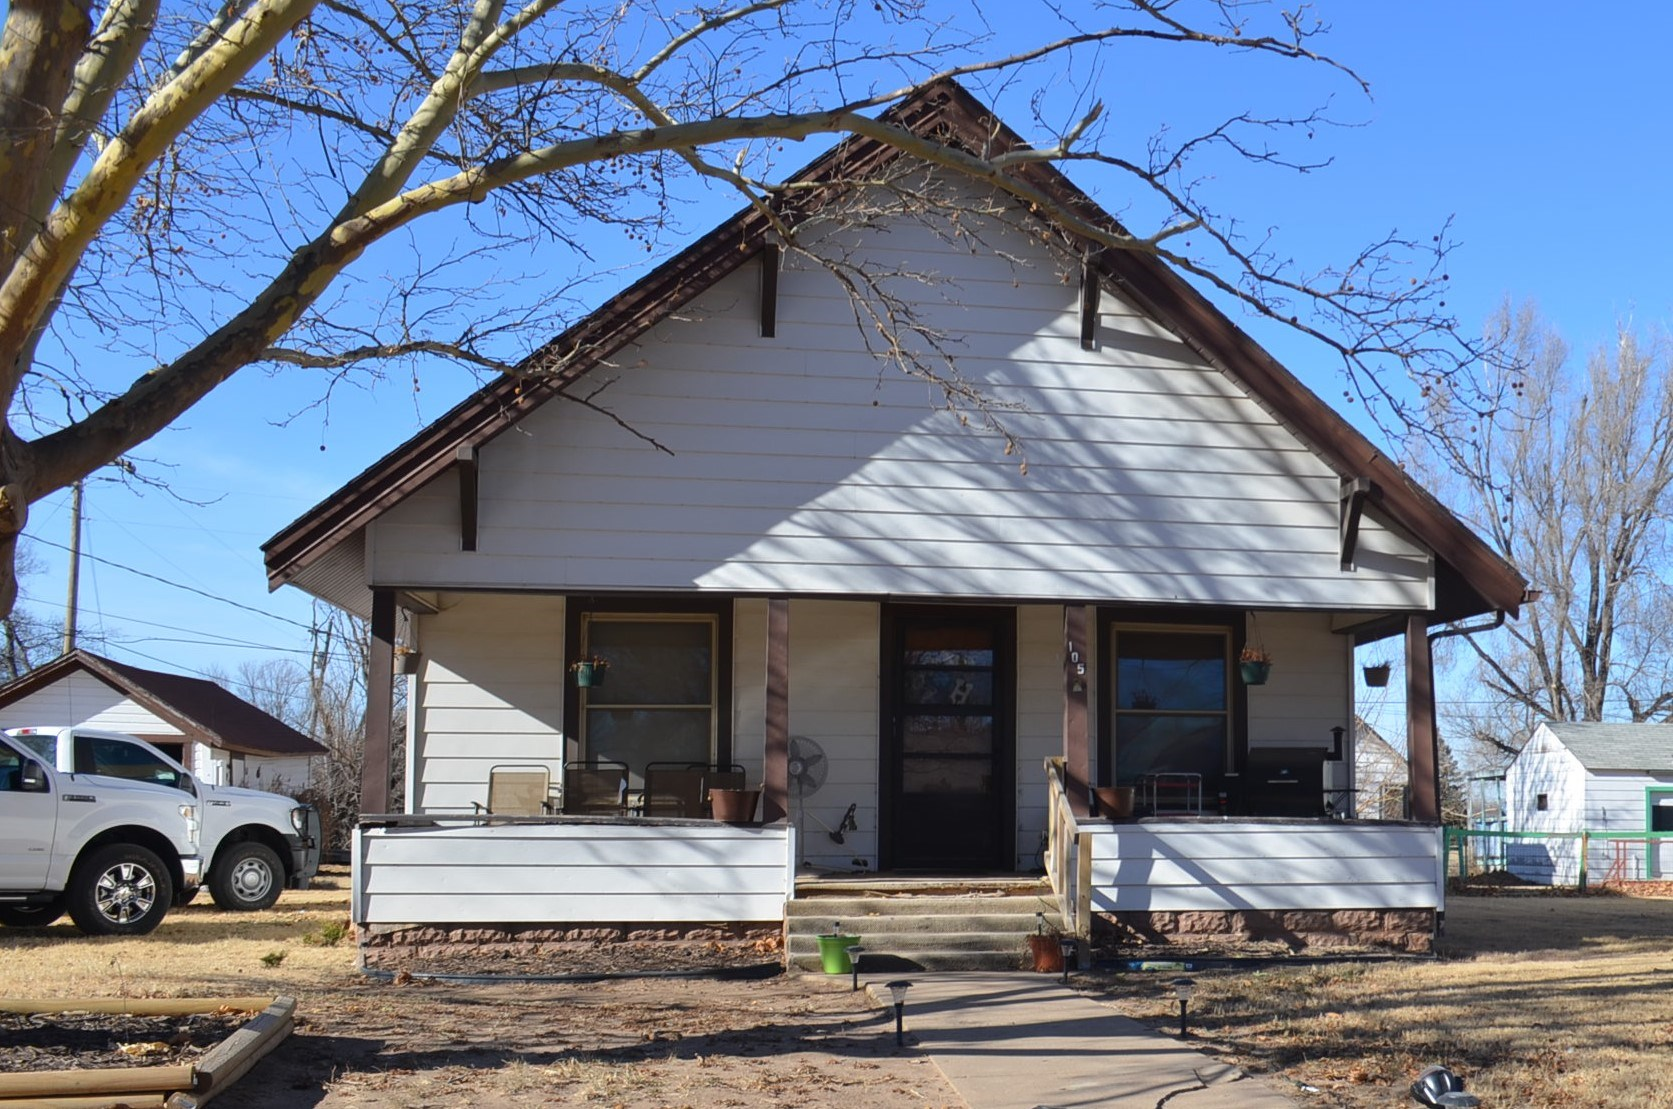 Historical Home For Sale in Protection, Kansas